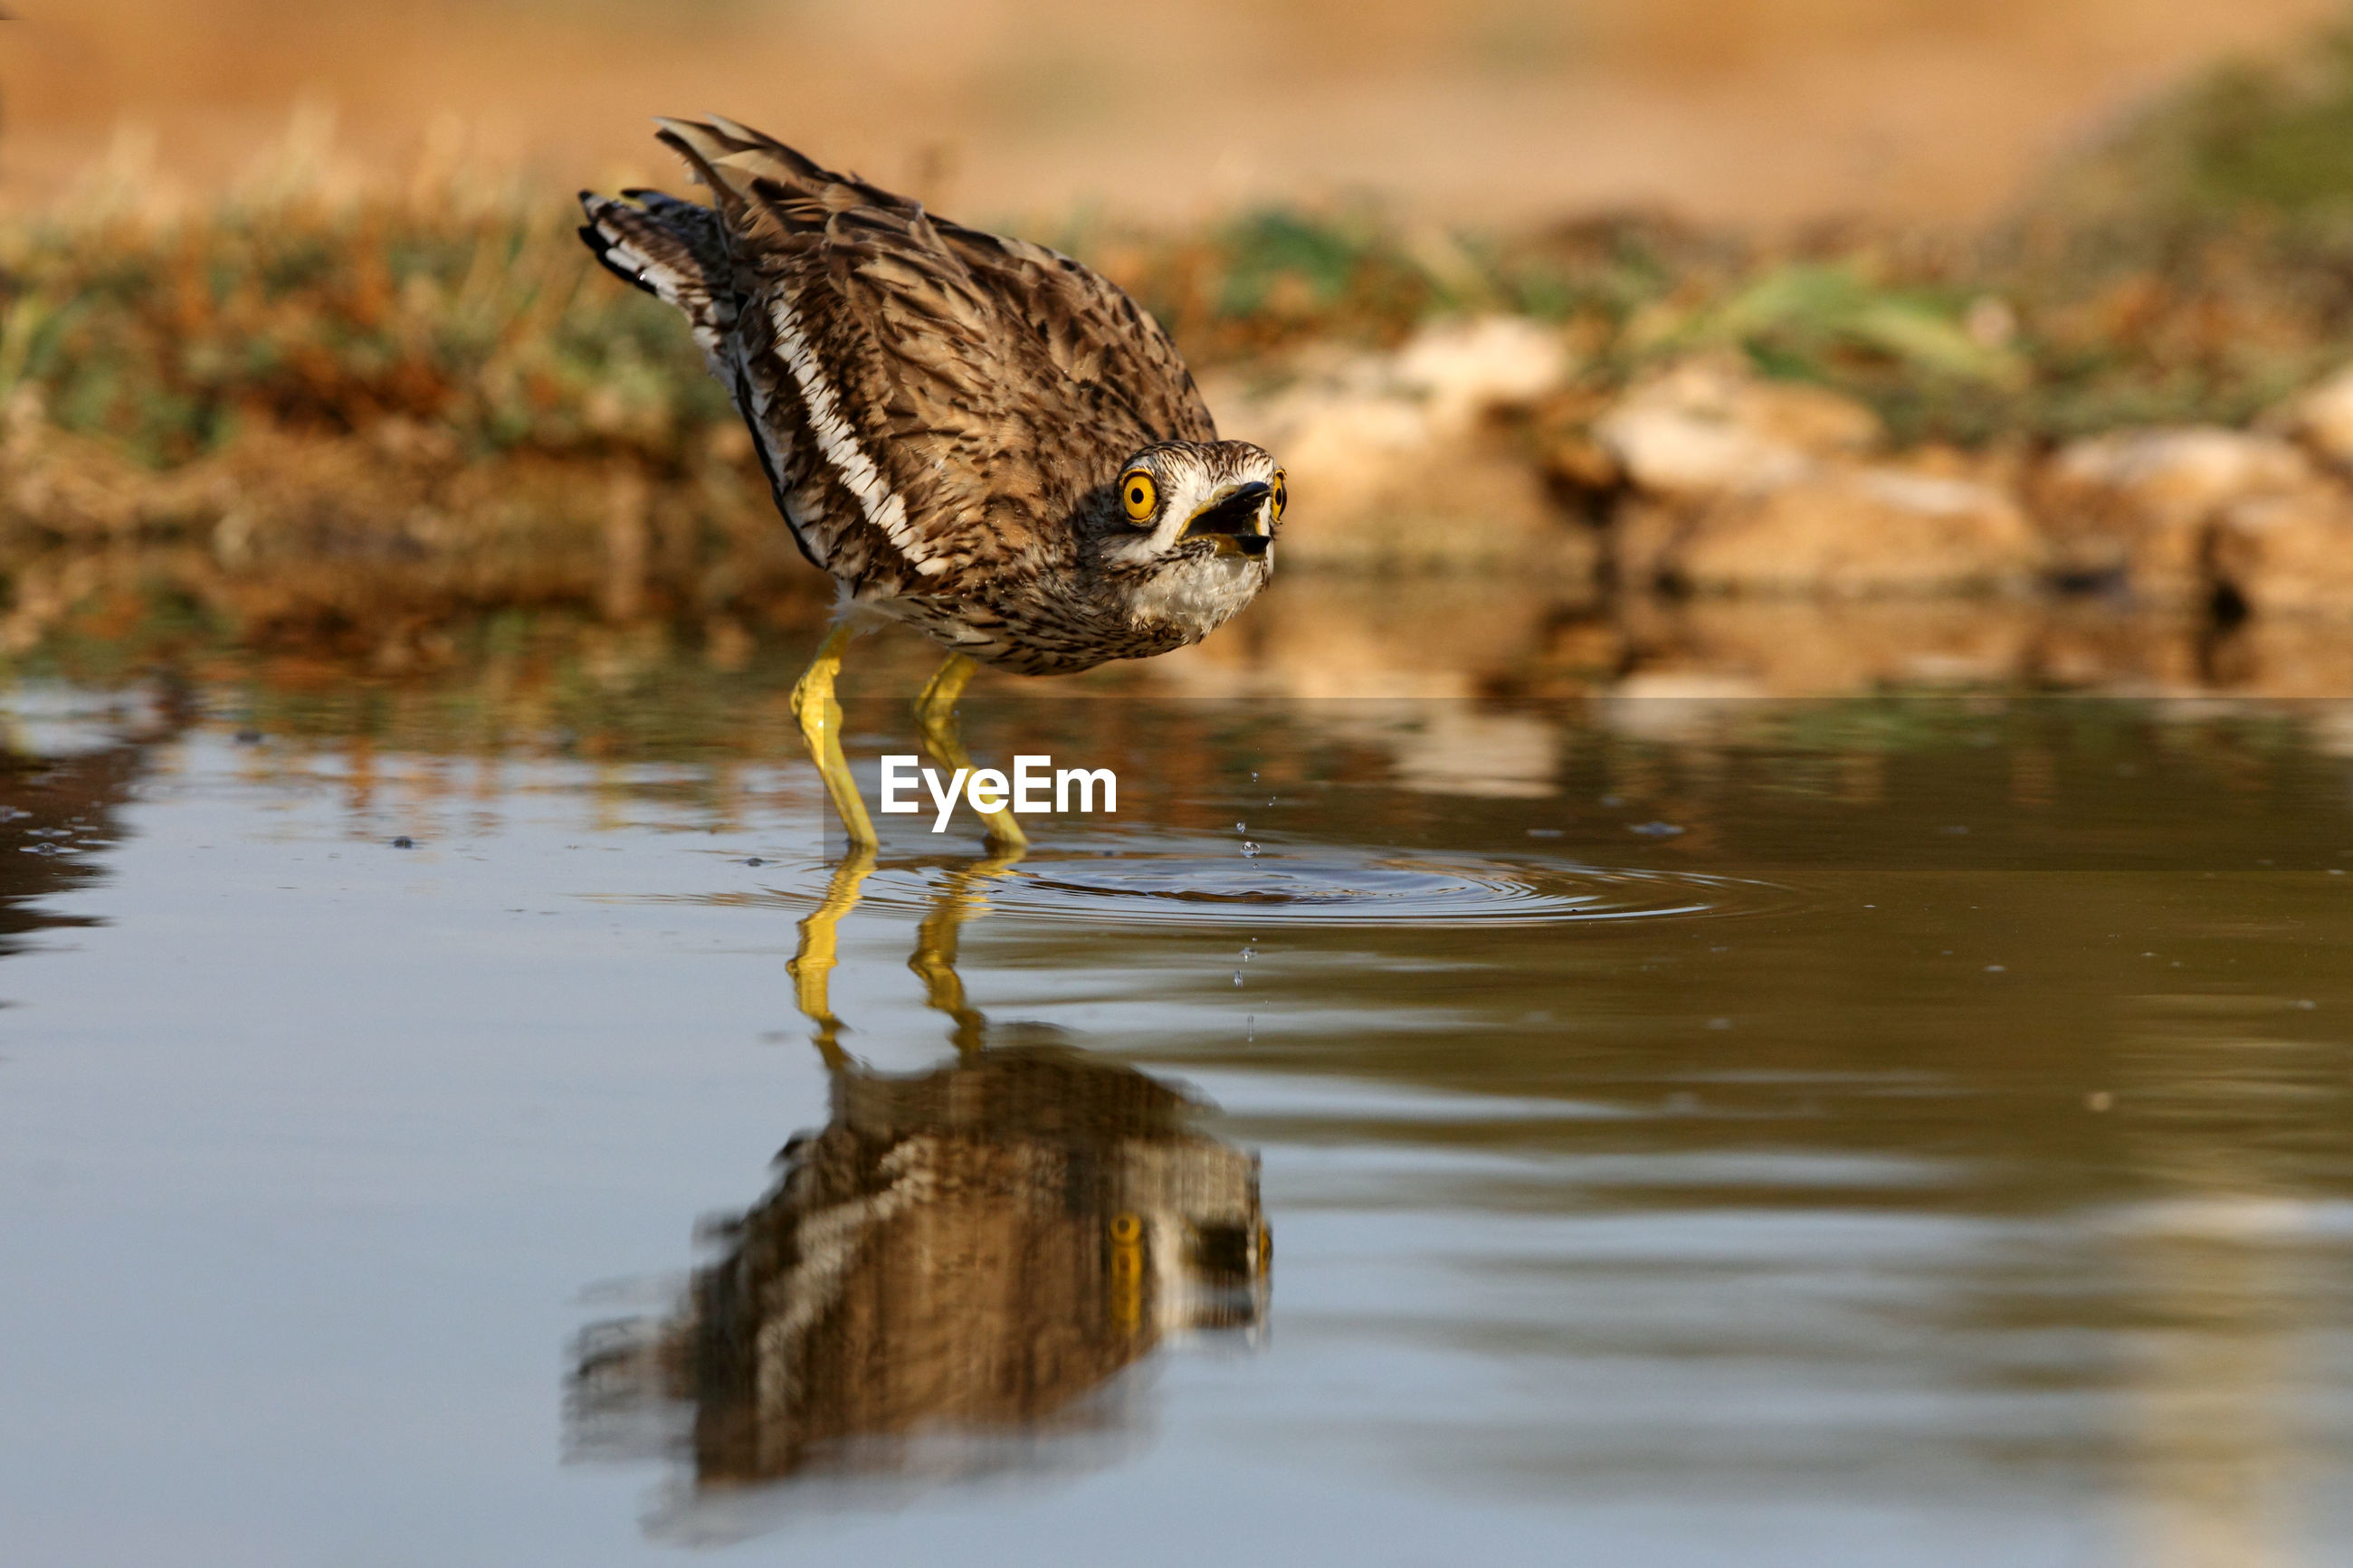 SIDE VIEW OF BIRD DRINKING WATER